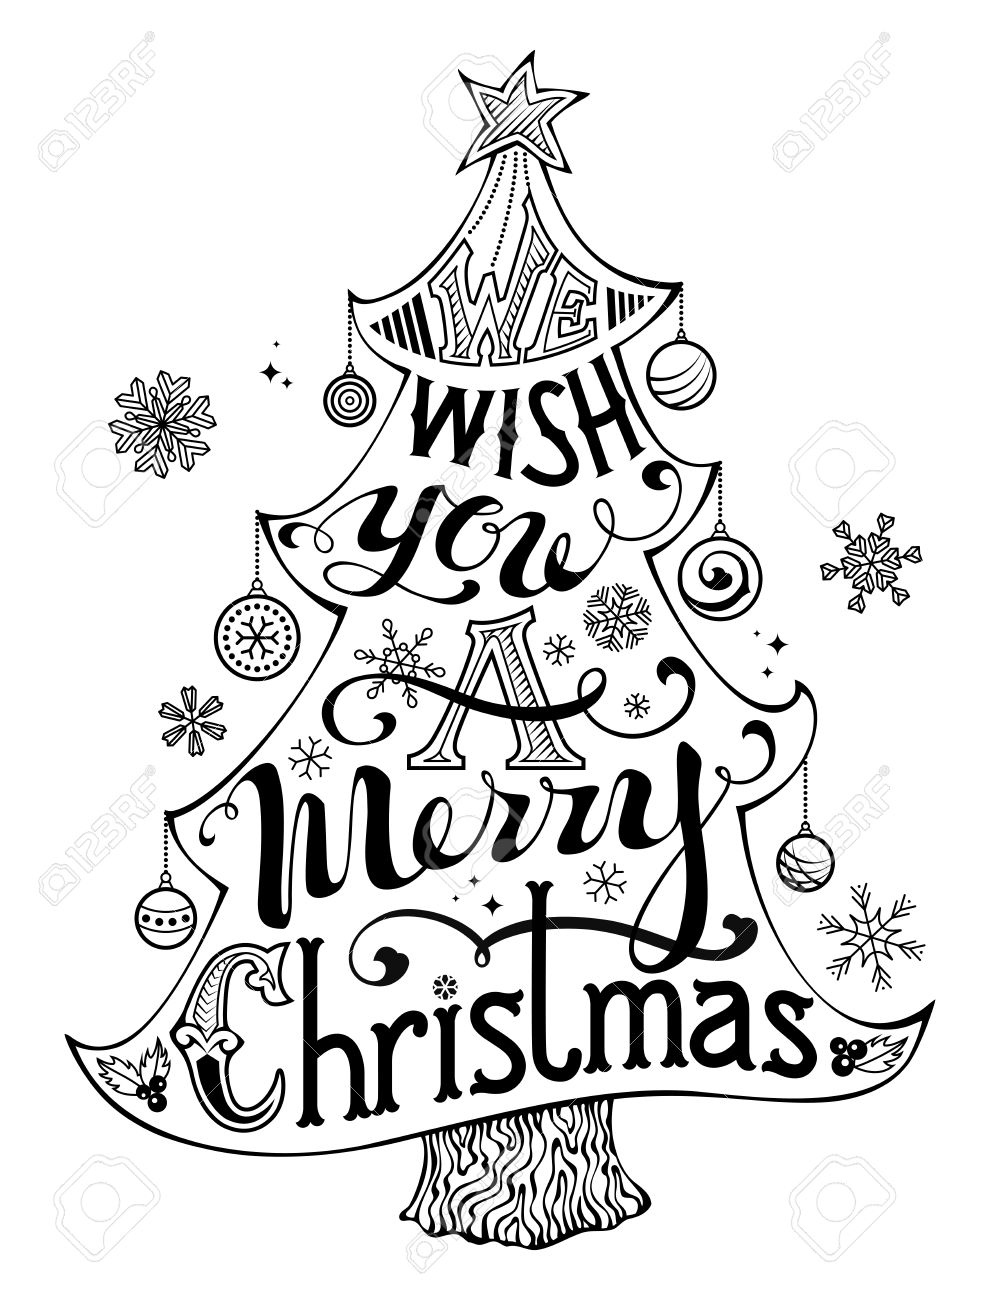 We Wish You A Merry Christmas Hand Written Text Holly Berry